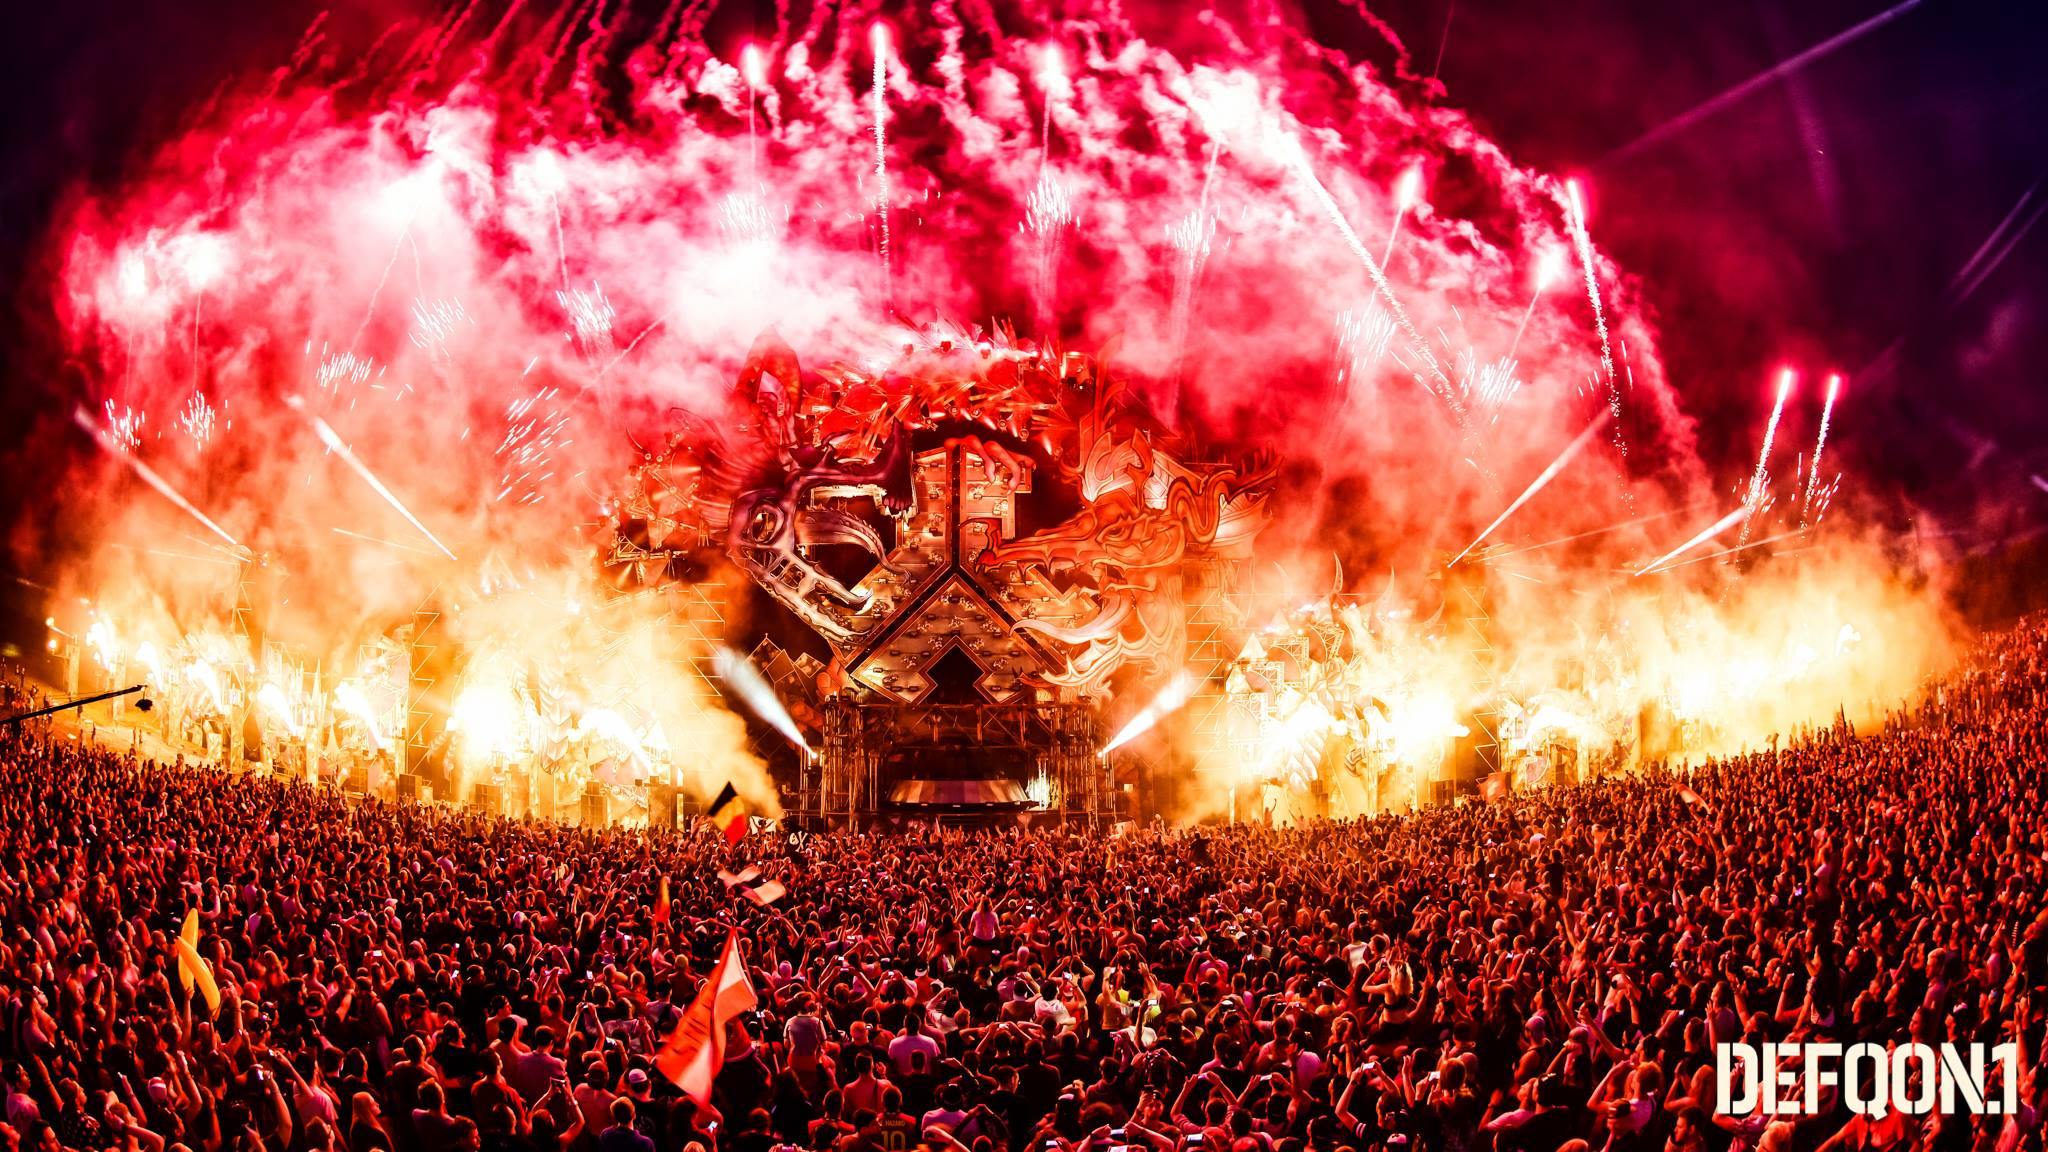 7 Pictures That Will Make You Want To Book A Trip: Watching The 2016 Defqon.1 Endshow Will Make You Want To Book A Trip For Next Year